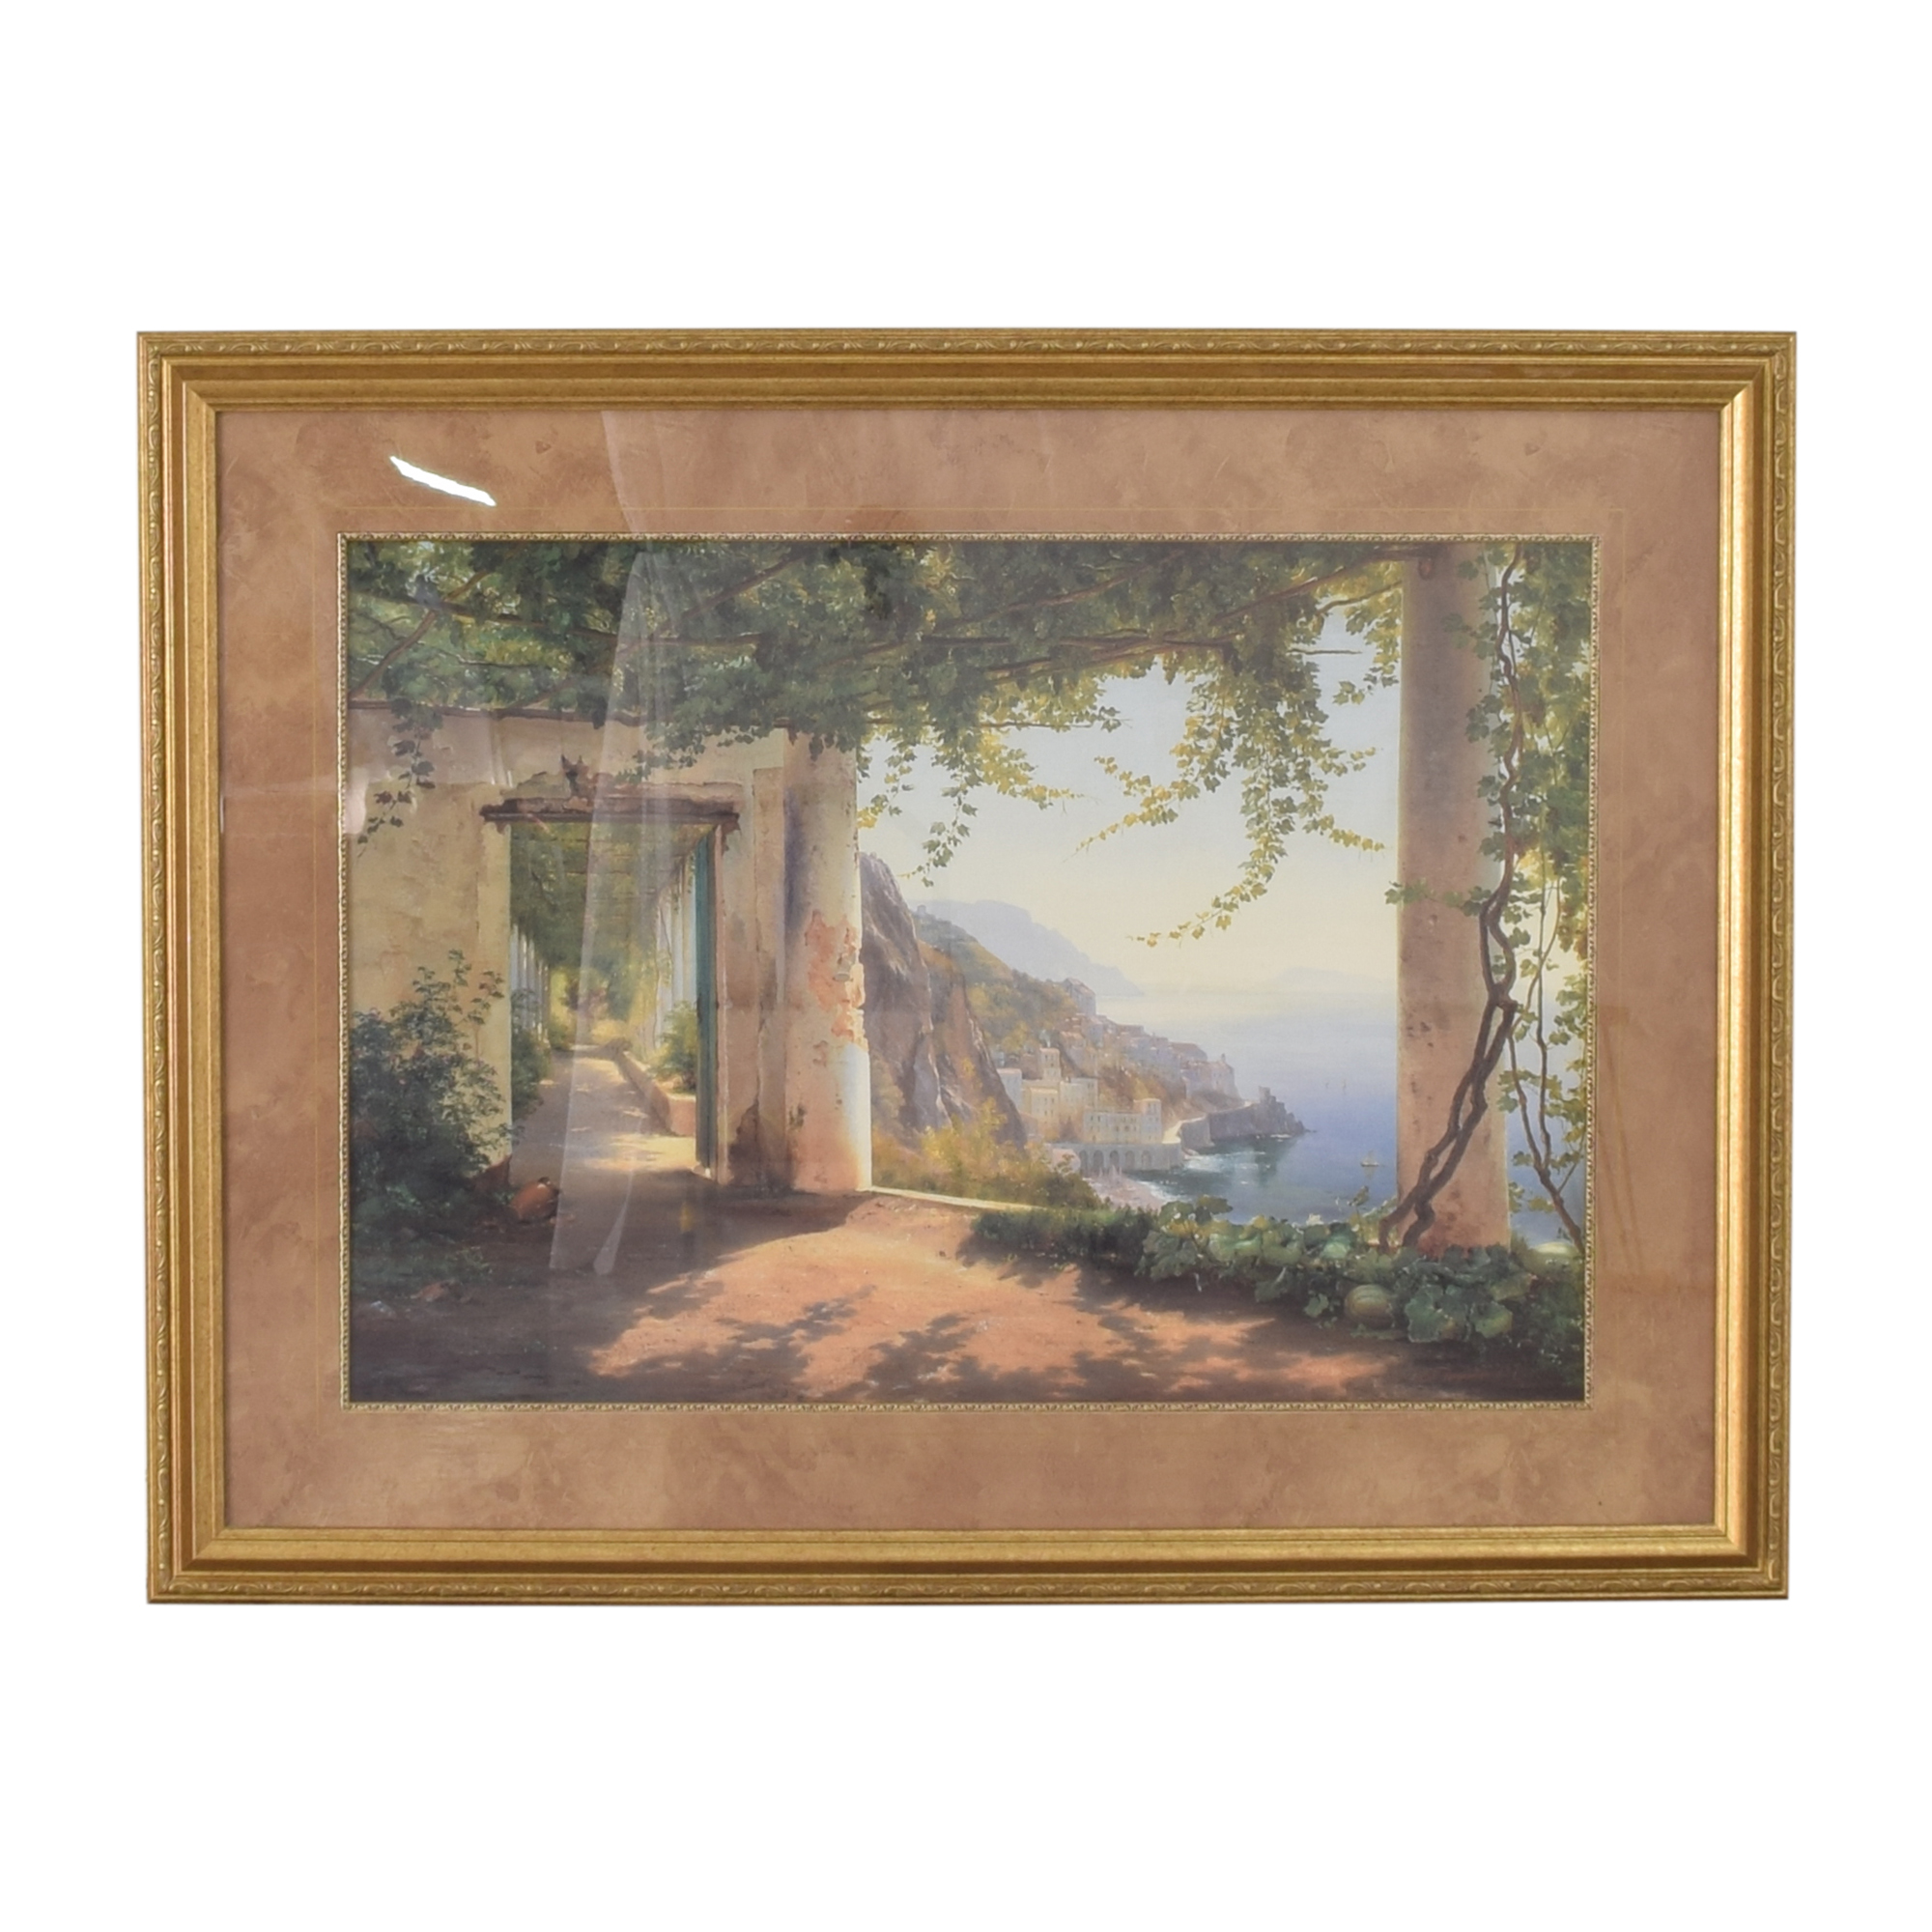 Ethan Allen Ethan Allen Amalfi Coast View Wall Art multi